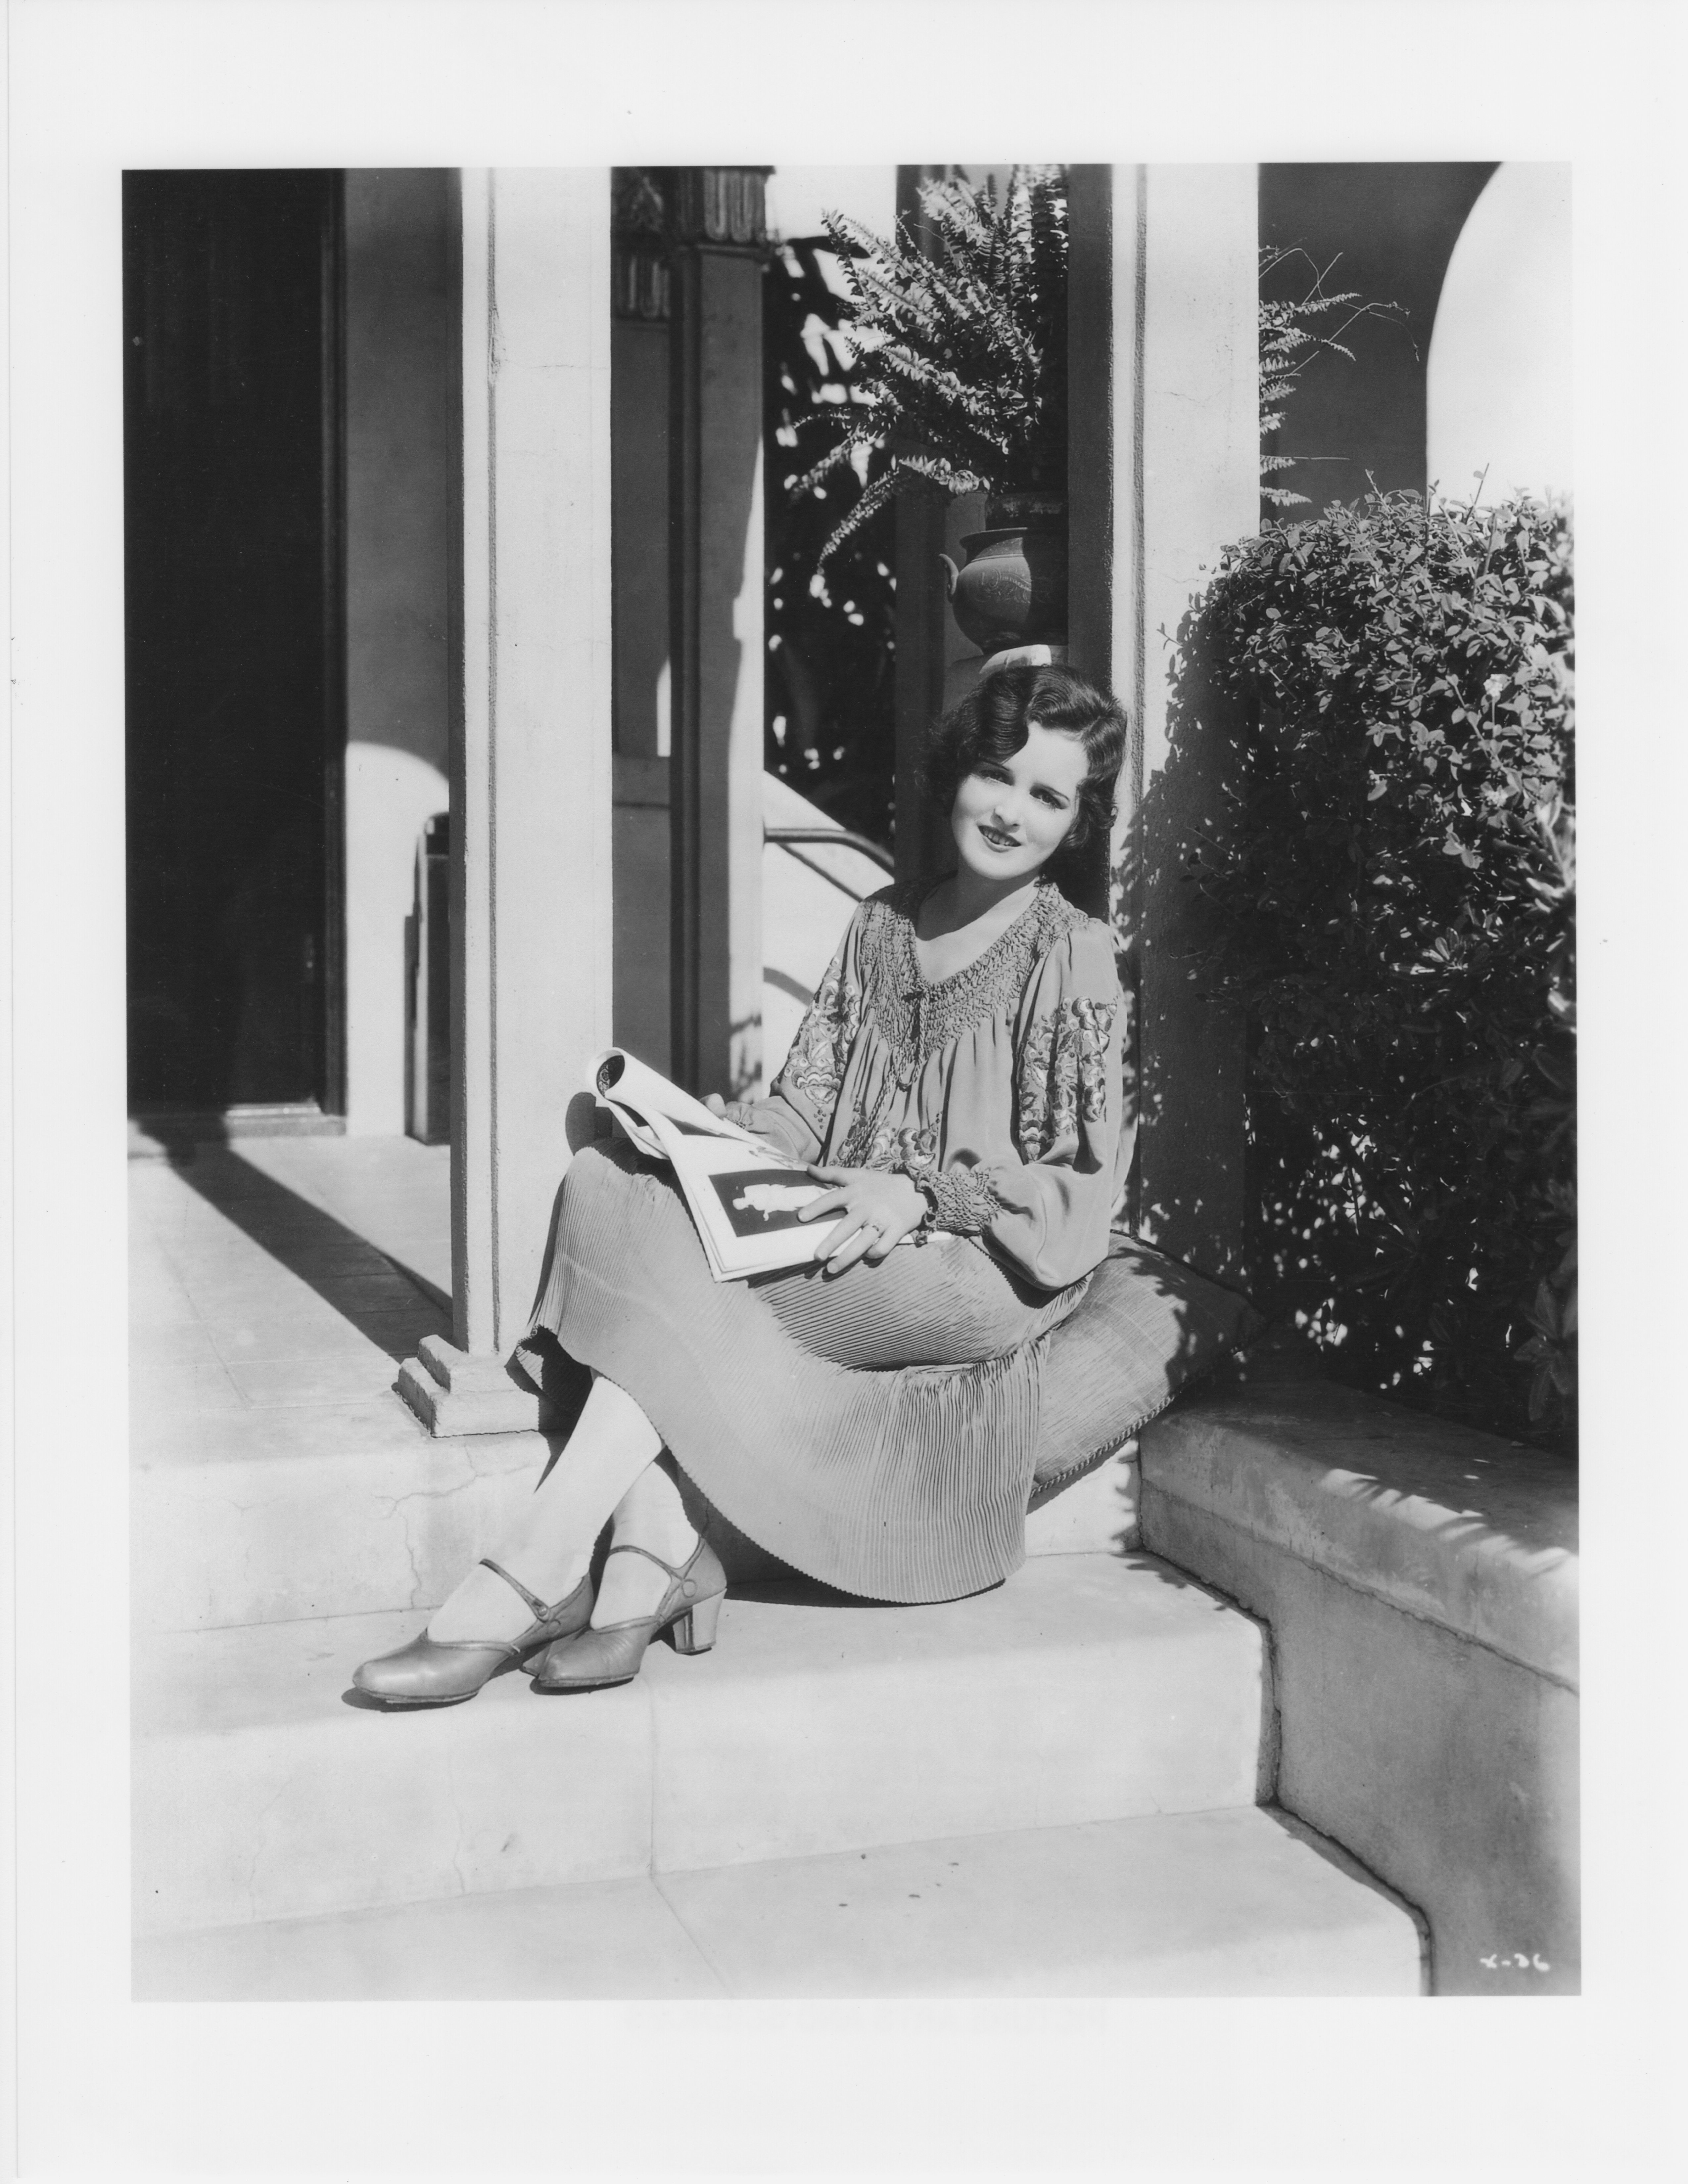 Mary Astor outside her family's home, Moorcrest. Courtesy of the Academy of Motion Picture Arts and Sciences